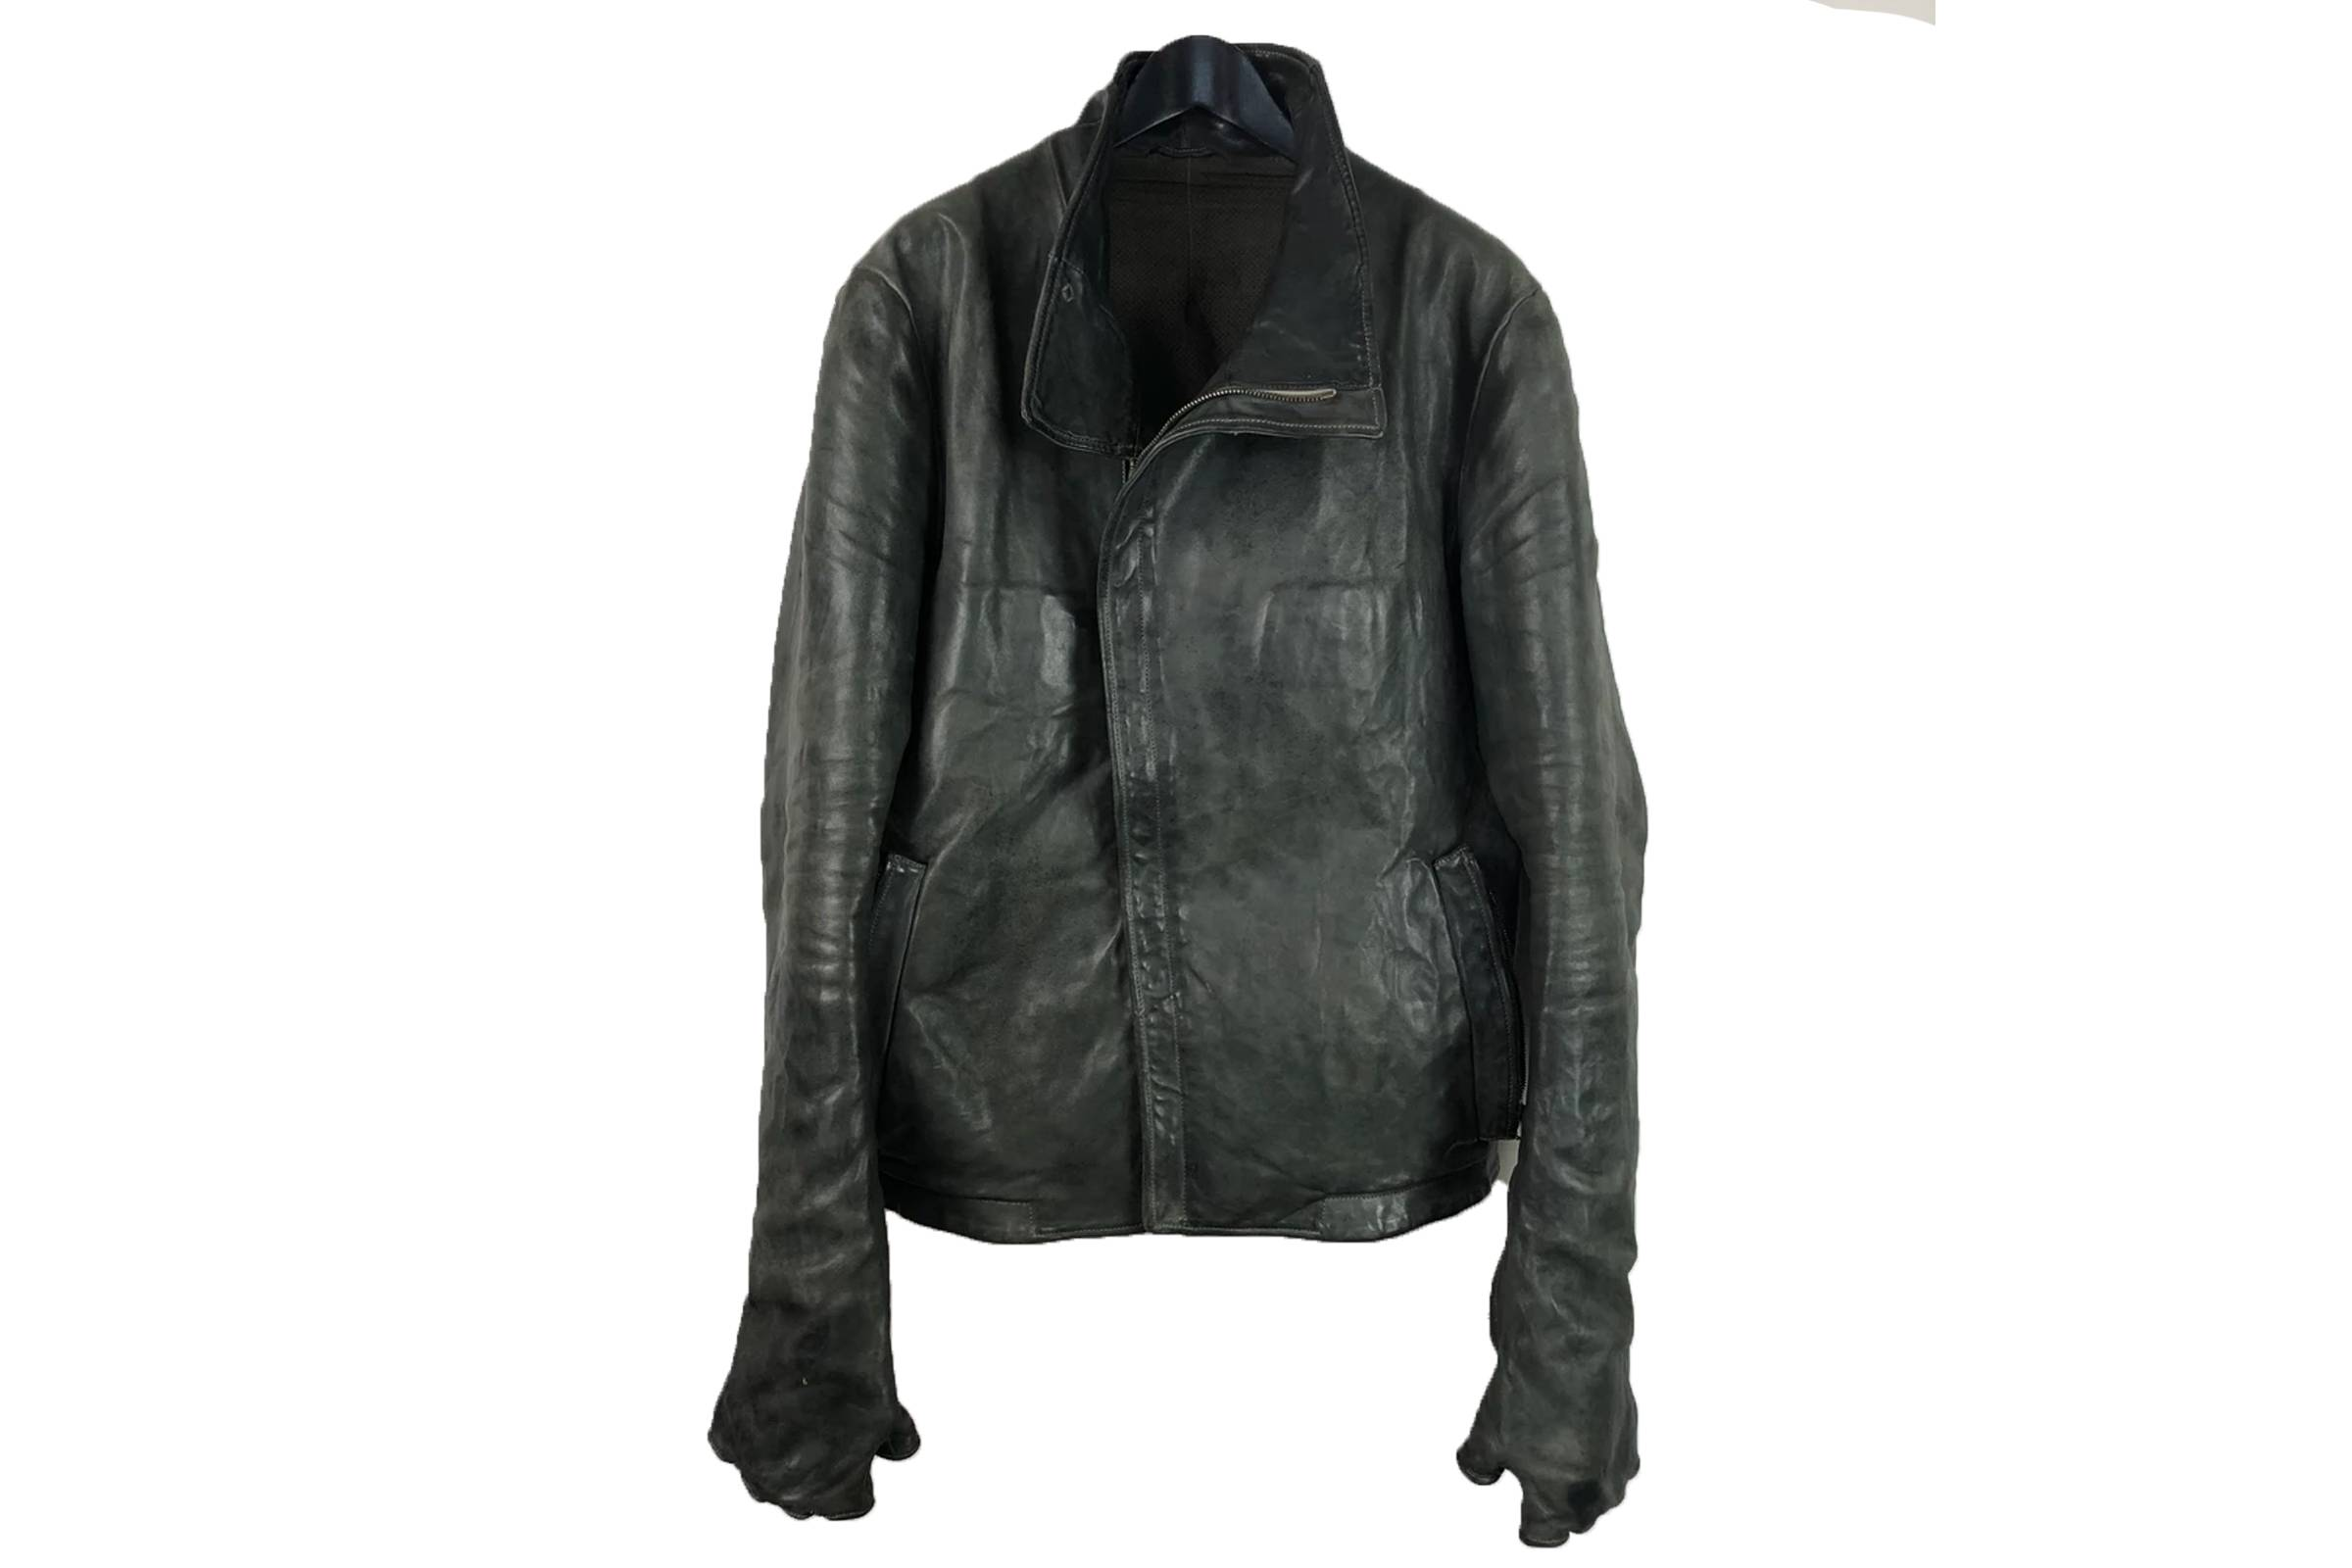 Carol Christian Poell CORS-PTC19 Gloved Leather Jacket